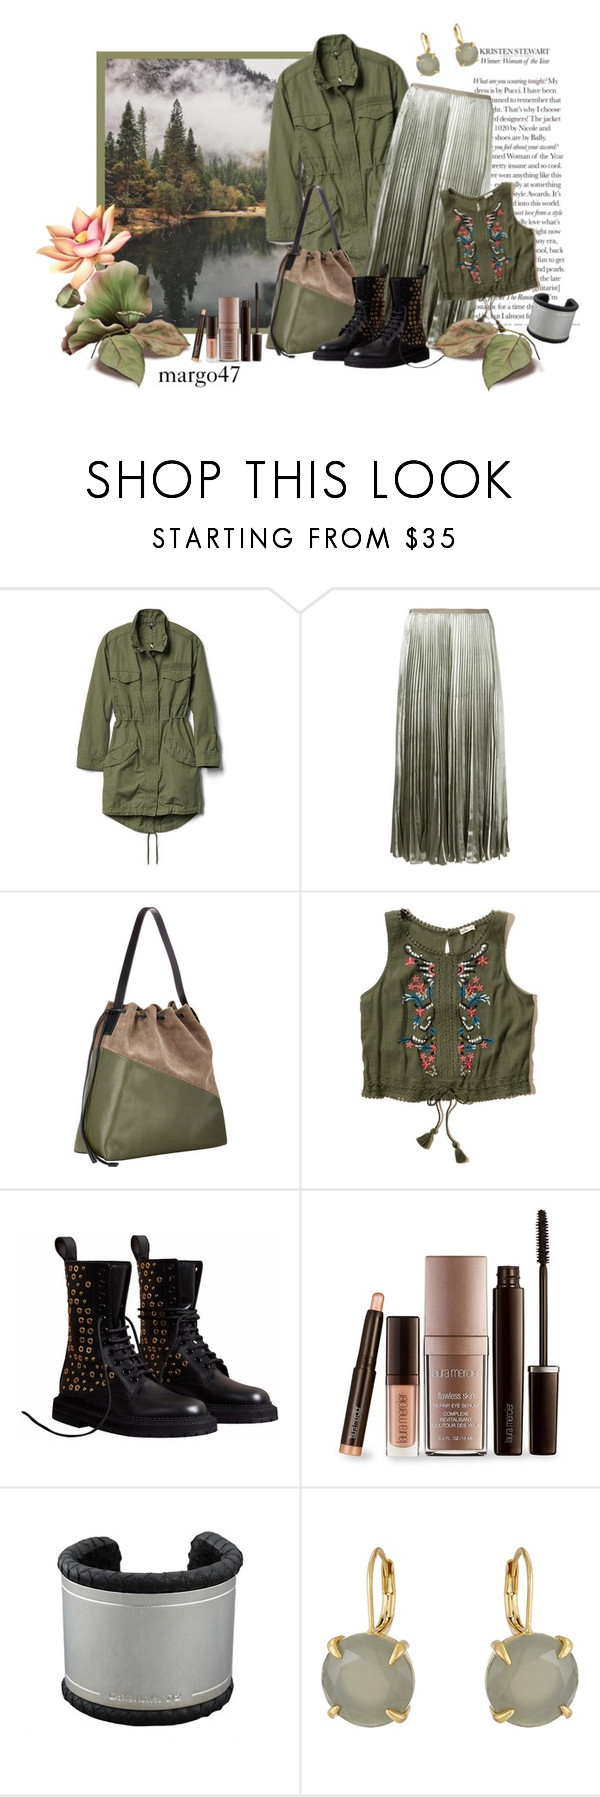 """""""jesienne"""" by margo47 ❤ liked on Polyvore featuring Gap, Valentino, Marni, Hollister Co., Burberry, Laura Mercier, Dsquared2 and Vince Camuto"""